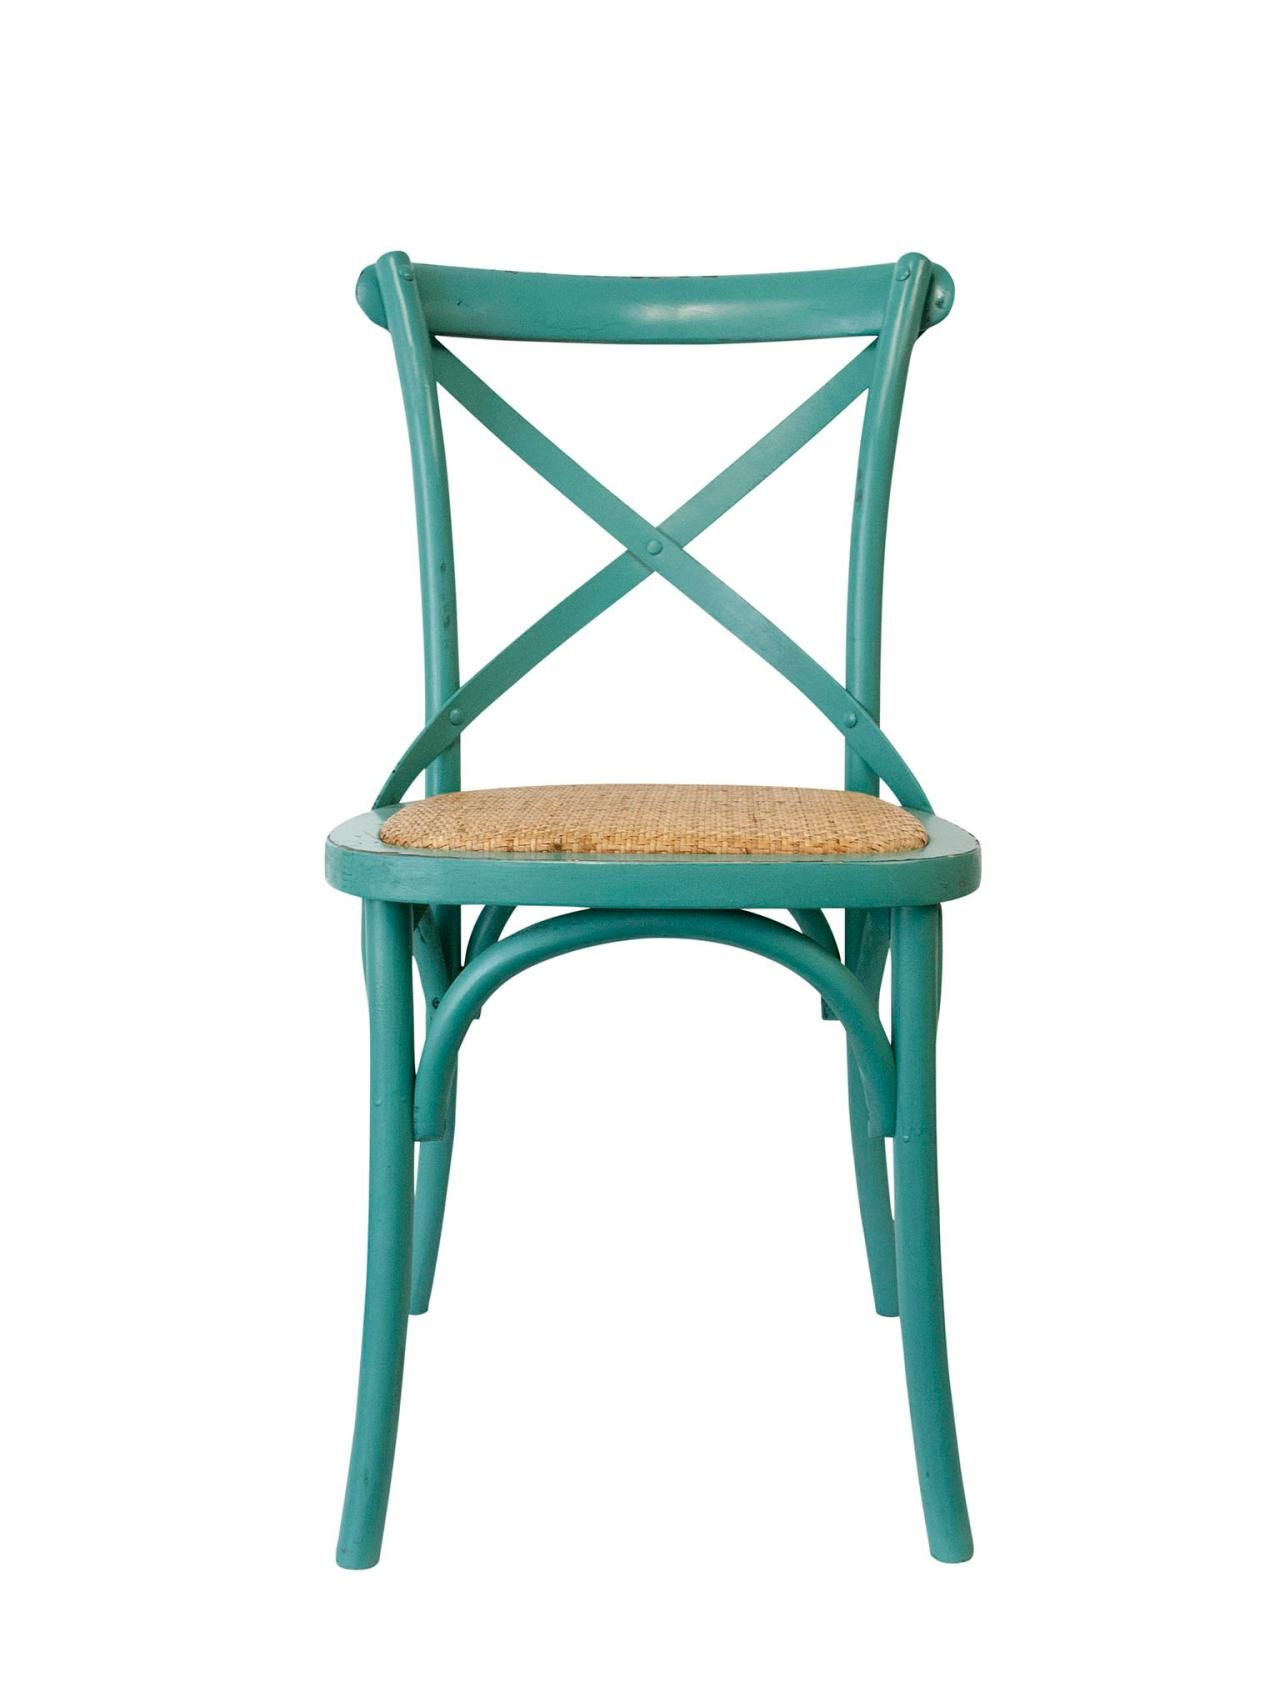 Pismo Saloon wood and wicker chair in teal, $129, urbanhome.com ...